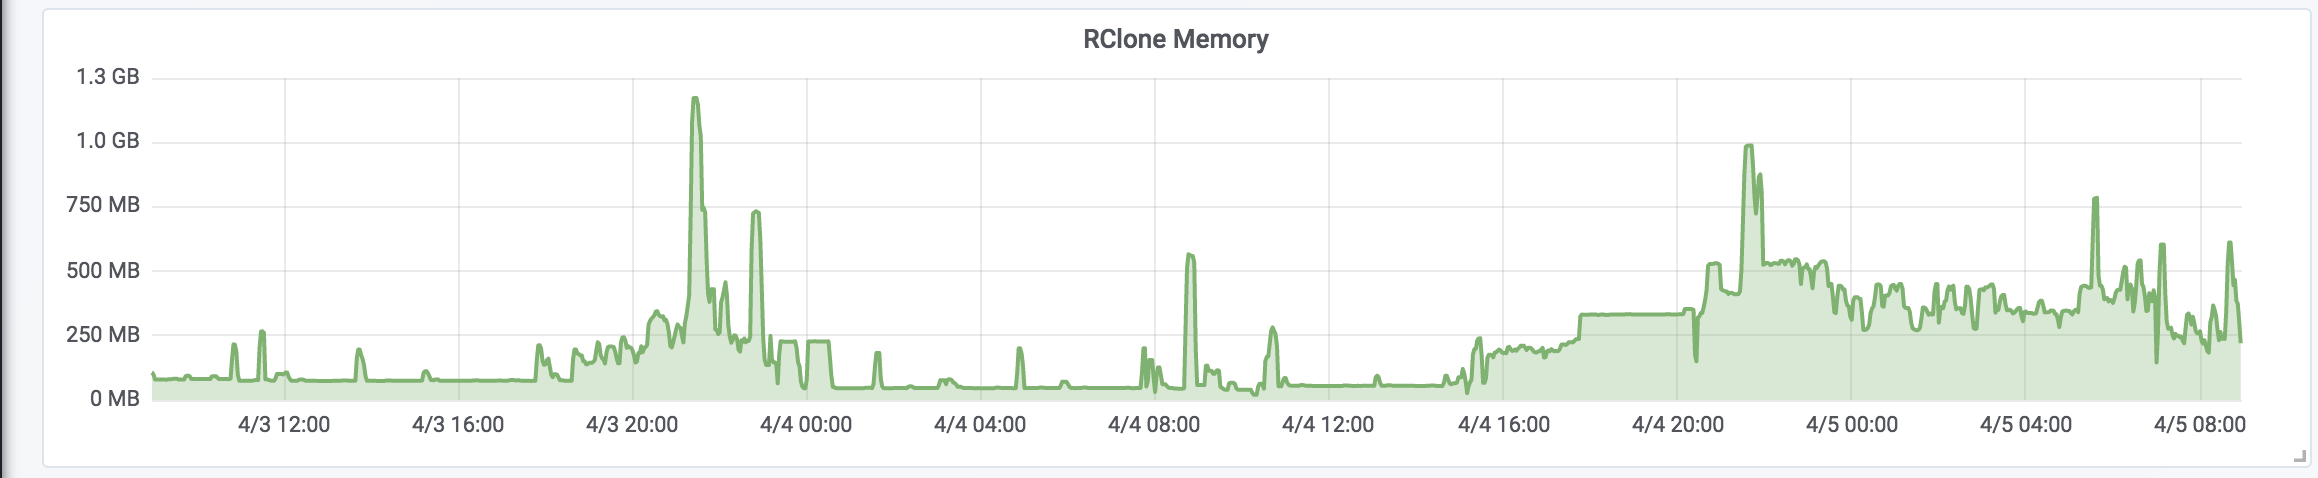 rclone still using too much memory · Issue #2200 · rclone